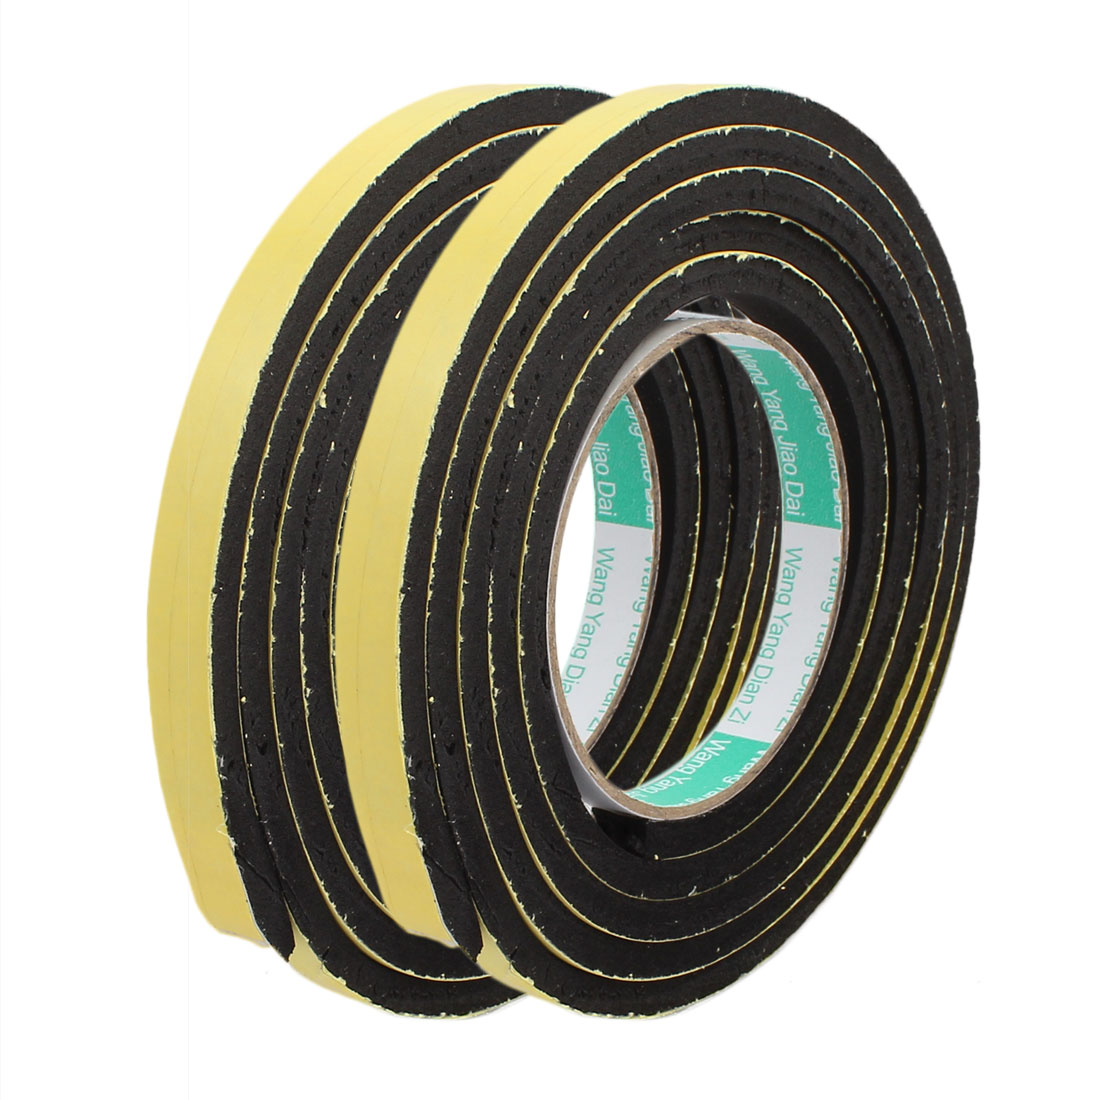 2Pcs 1.2cm Width 2m Length 6mm Thick Single Sided Sealing Shockproof Sponge Tape